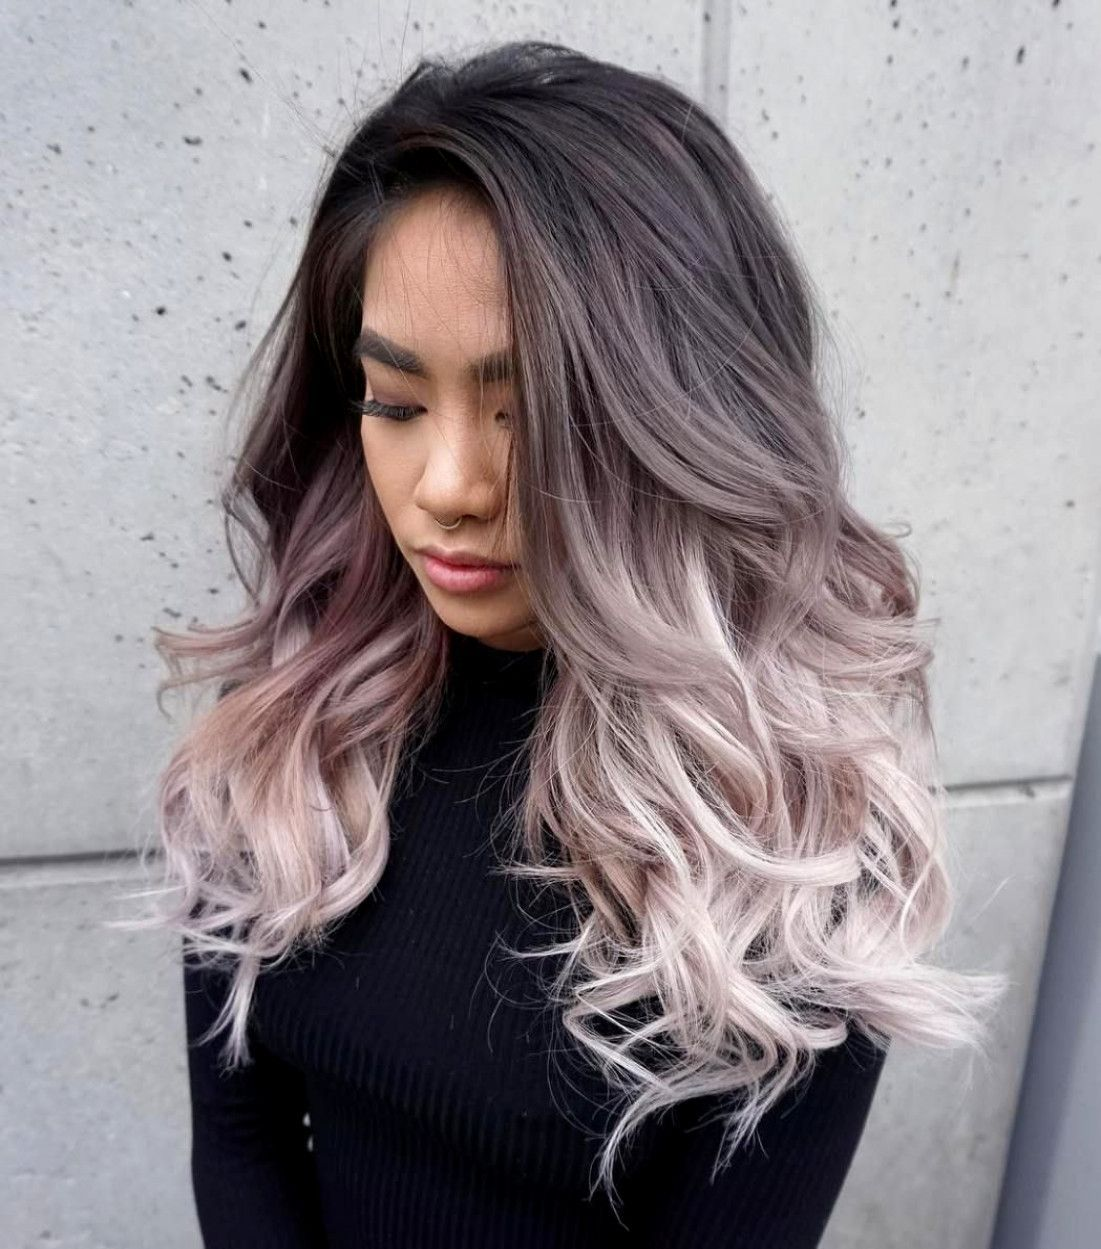 Top 10 Hair Color Trends For Blonde Women In 2021 Pouted Com In 2020 Ash Blonde Ombre Hair Ombre Hair Blonde Hair Color Asian